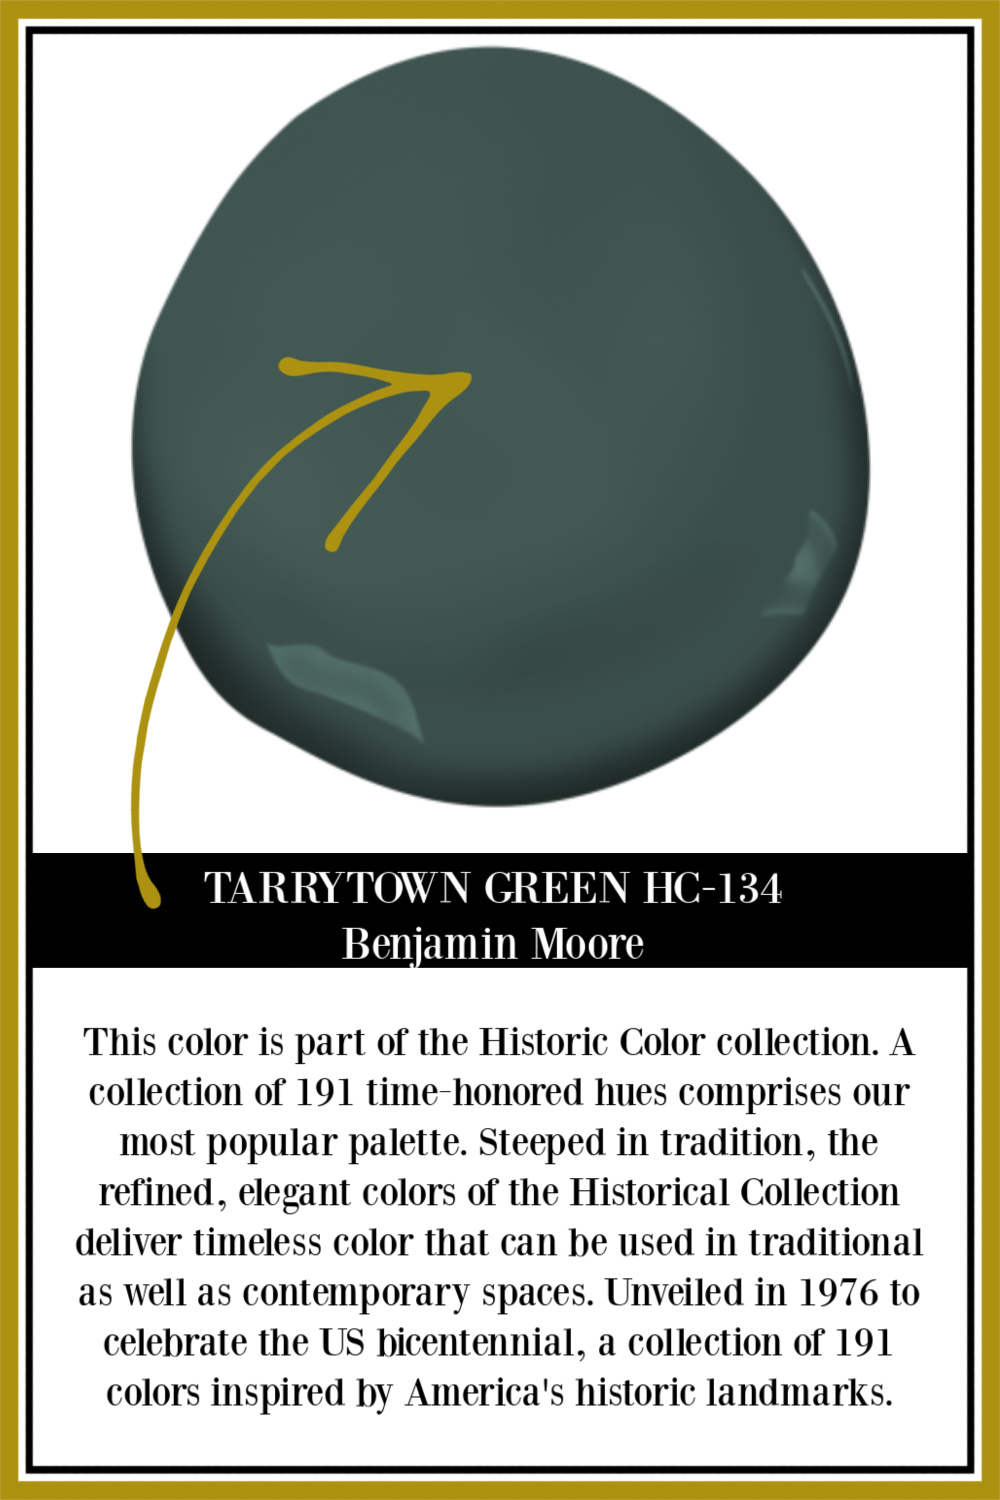 Tarrytown Green HC-134 Benjamin Moore paint color swatch - see interiors and exteriors with this deep green on Hello Lovely. #tarrytowngreen #paintcolors